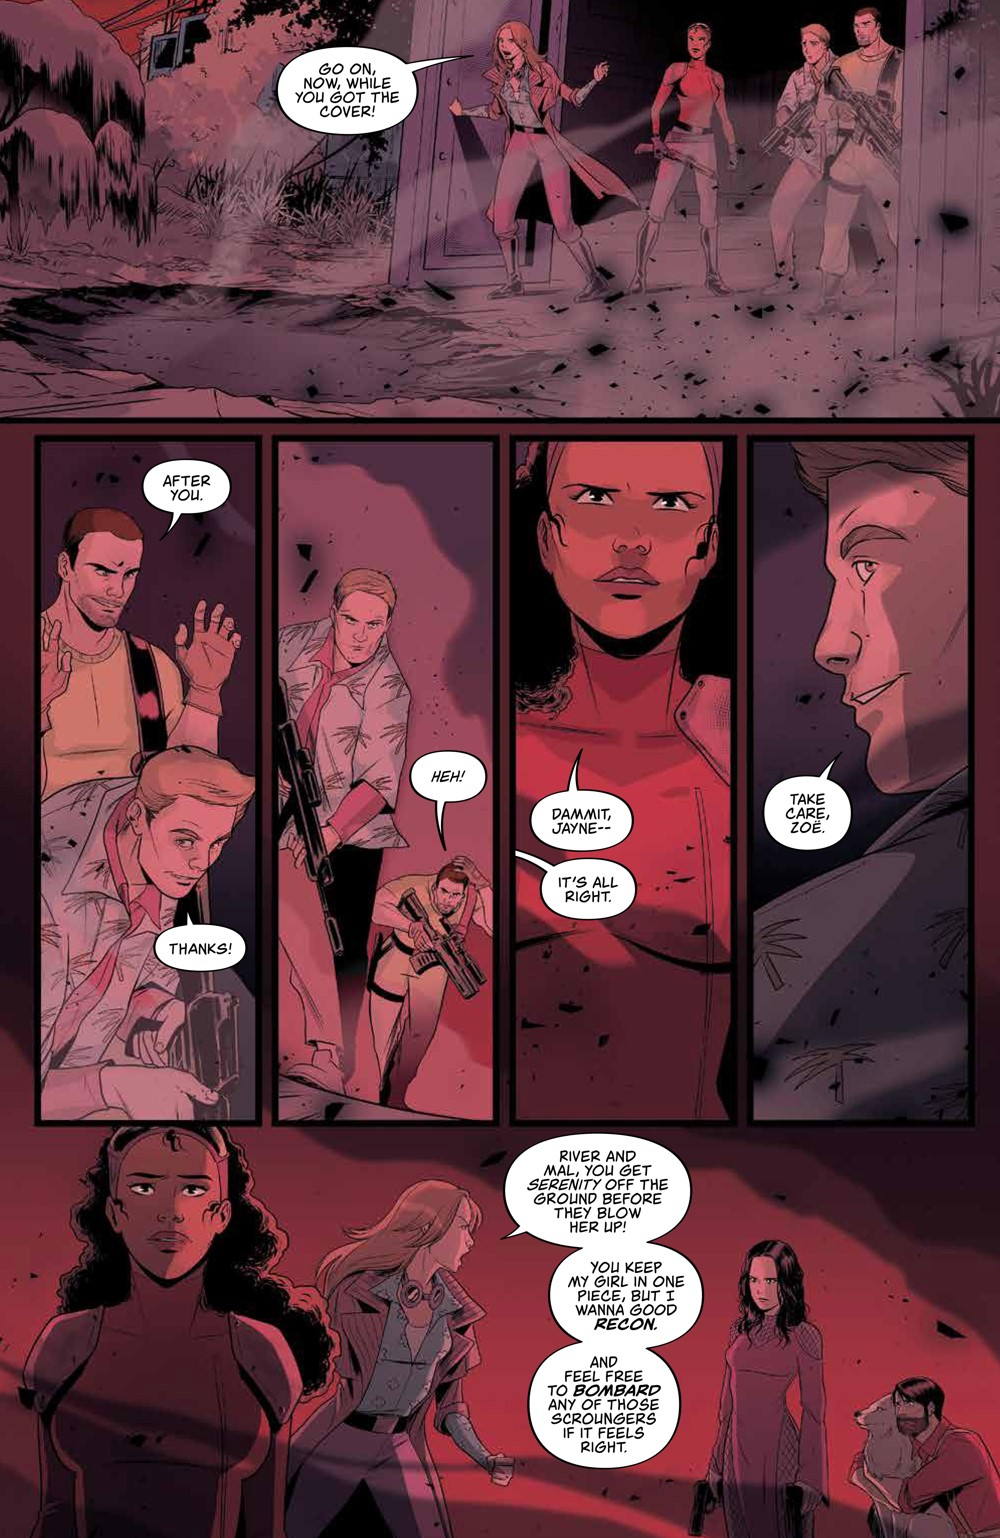 Firefly_030_PRESS_7 ComicList Previews: FIREFLY #30